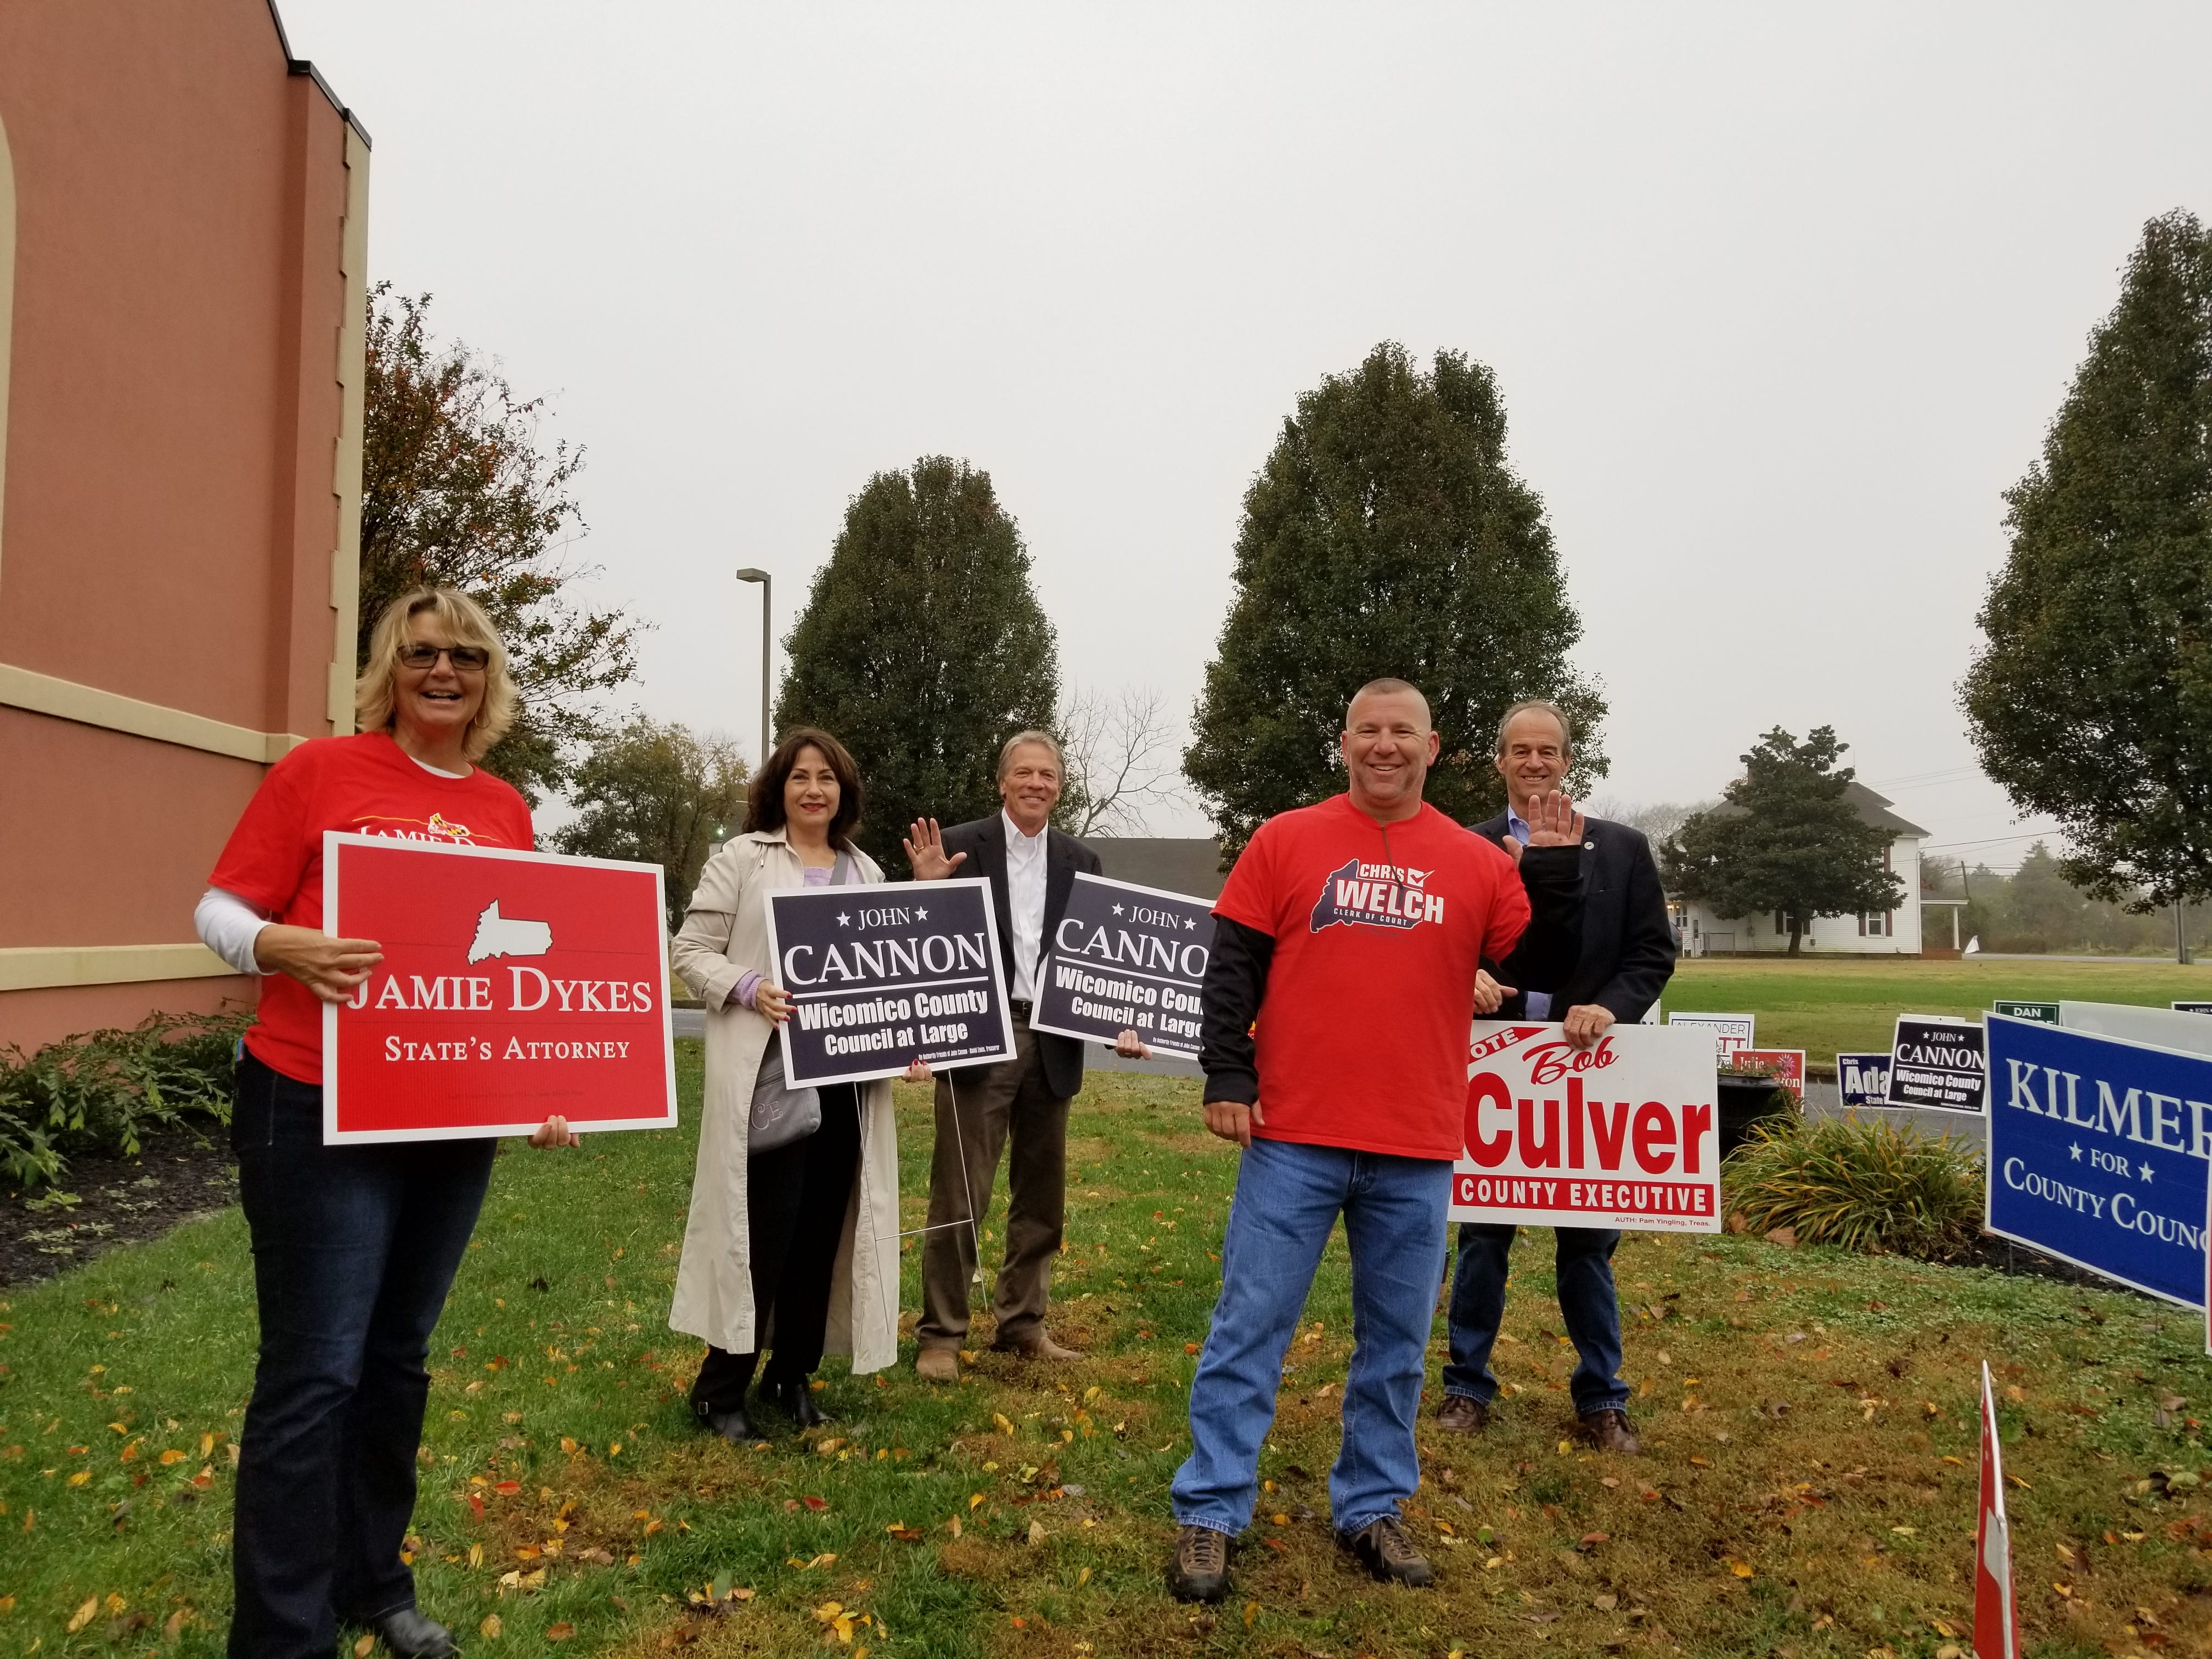 A group of Republican candidates and supporters stand outside Crosse Pointe Church of the Nazarene on Nanticoke Road in Salisbury Election Day morning, including from left a Jamie Dykes supporter, Laurie and John Cannon, Chris Welch and Bob Culver.